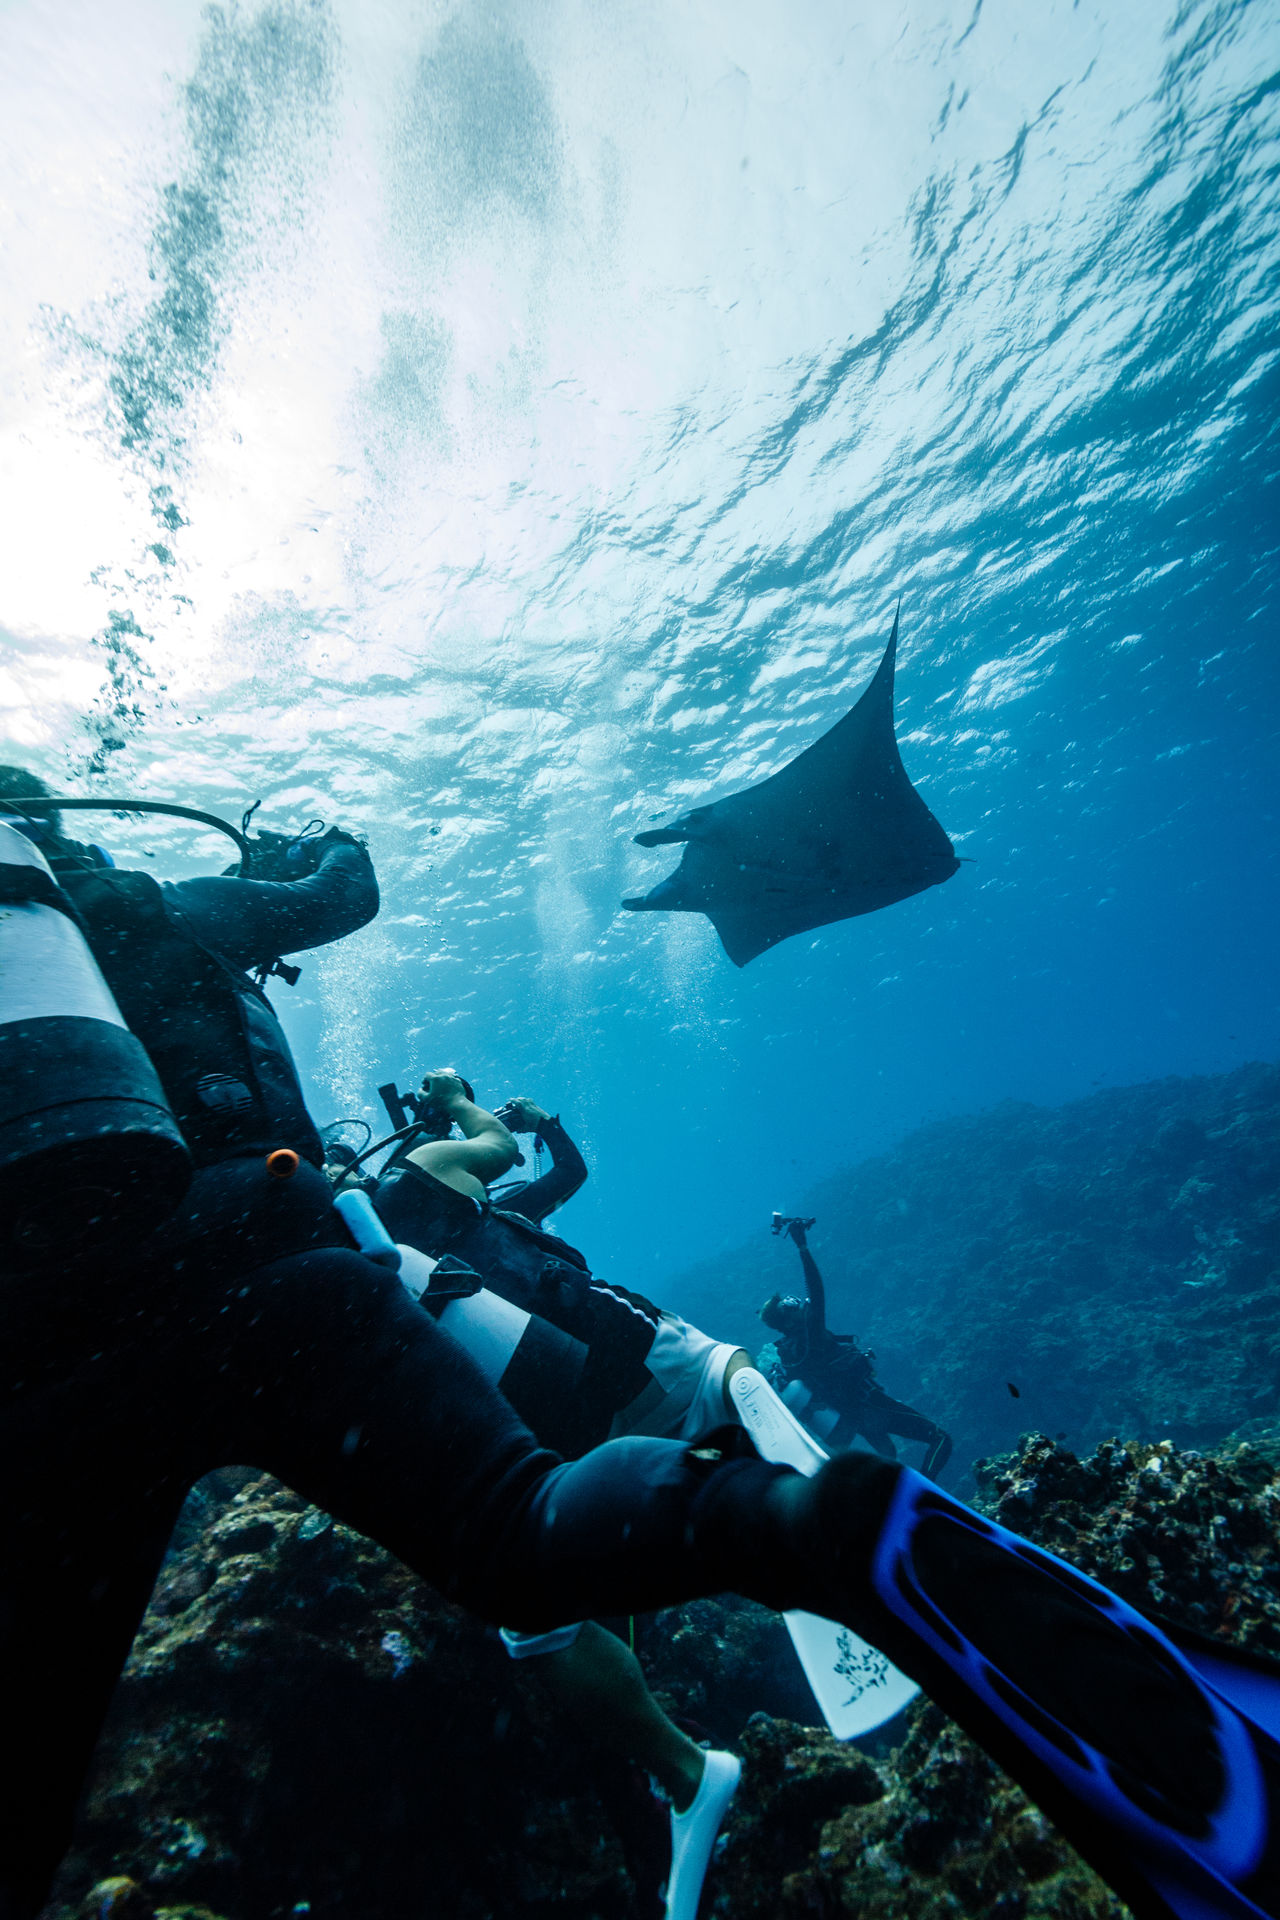 underwater adventure Adventure Behind Day Divers Exploration Flower Human Hand Leisure Activity Lifestyles Men Nature One Person Outdoors People Real People Scuba Diver Scuba Diving Sea Sea Life Swimming Take Picture UnderSea Underwater Watching Water The Great Outdoors - 2017 EyeEm Awards